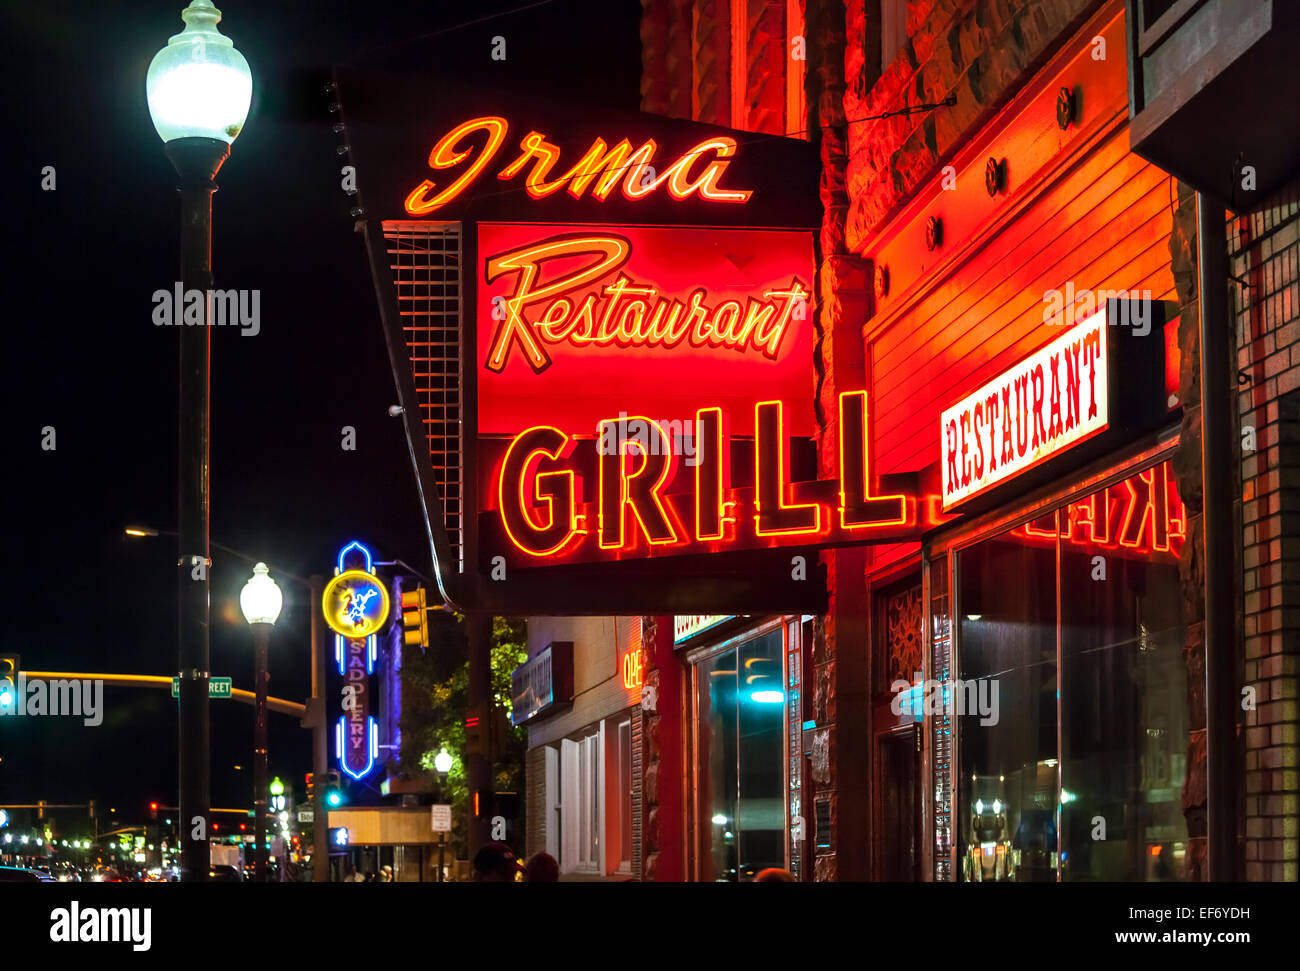 Irma Hotel Restaurant Grill in Cody Wyoming. Vintage Neon Sign. Stock Photo